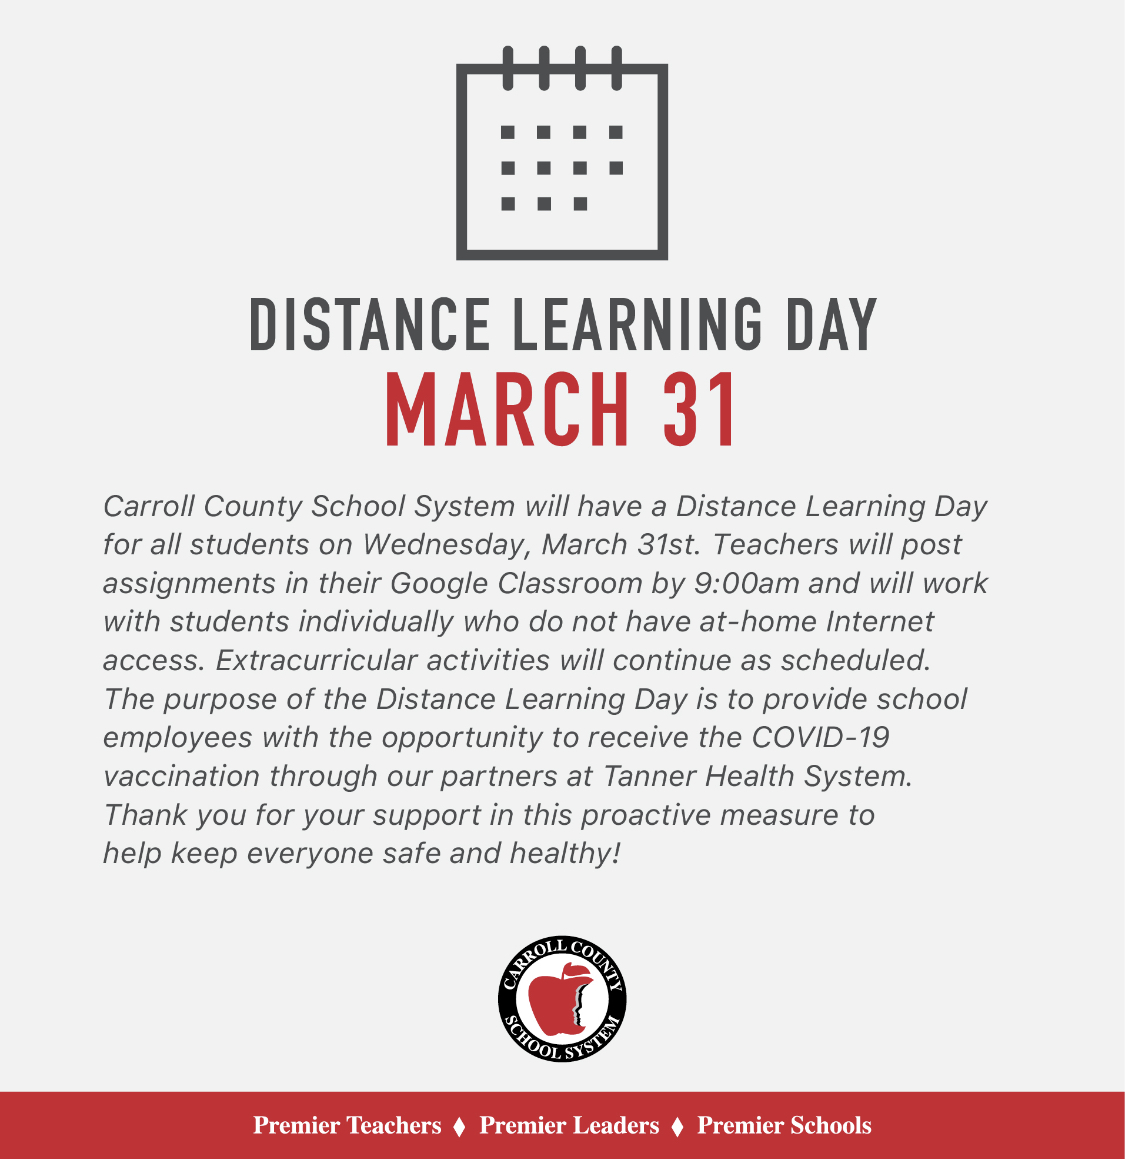 distance learning day March 31st